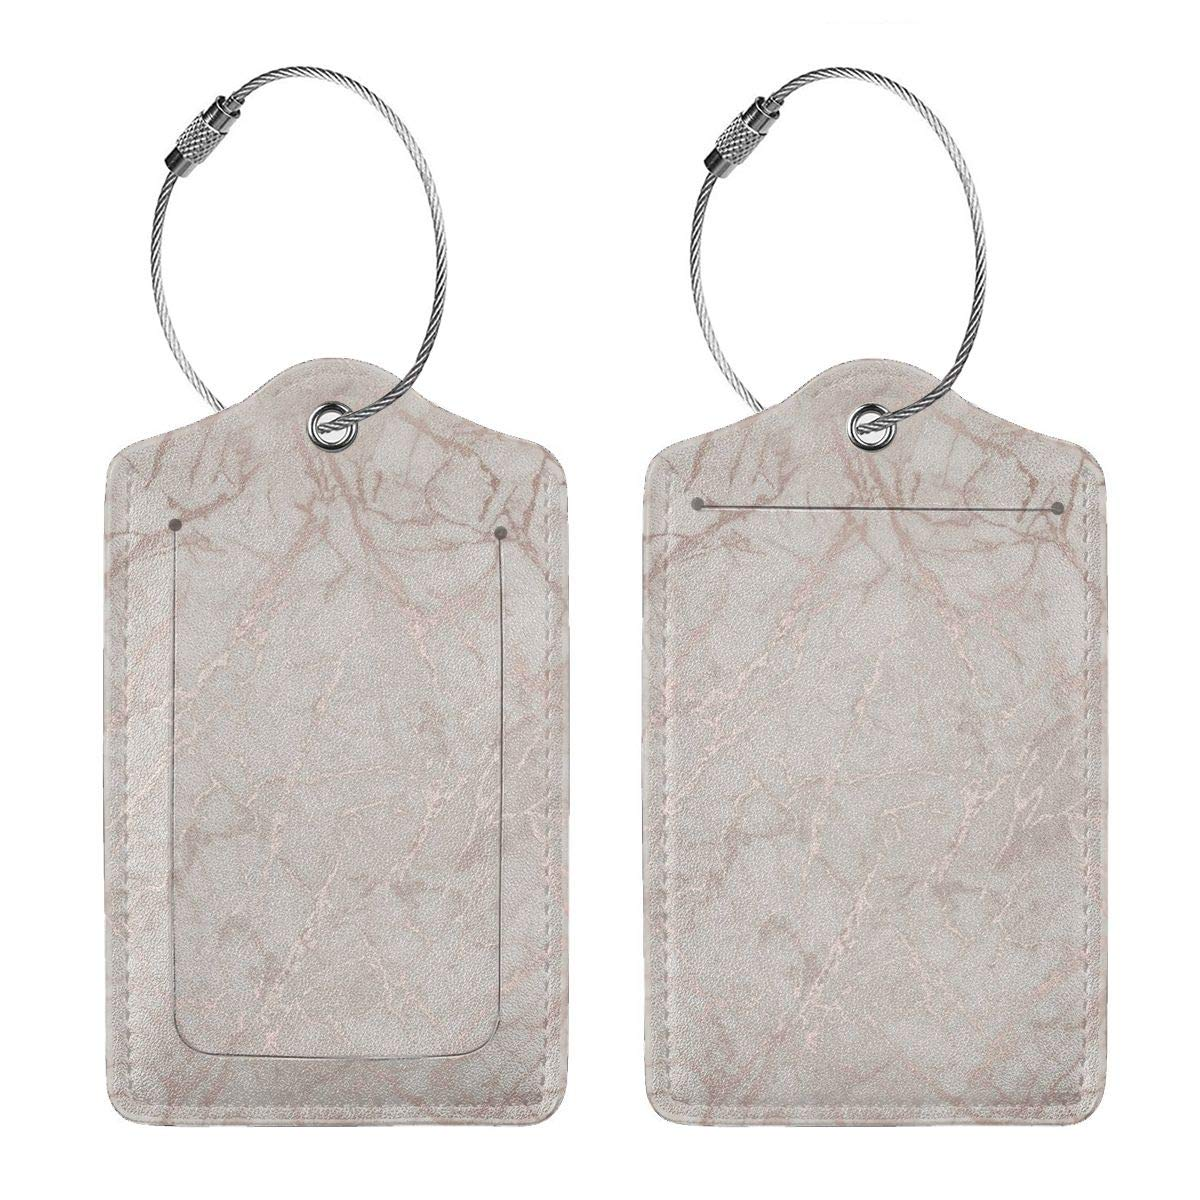 Marble-Rose-Gold8 Leather Luggage Tags Personalized Privacy Cover With Adjustable Strap